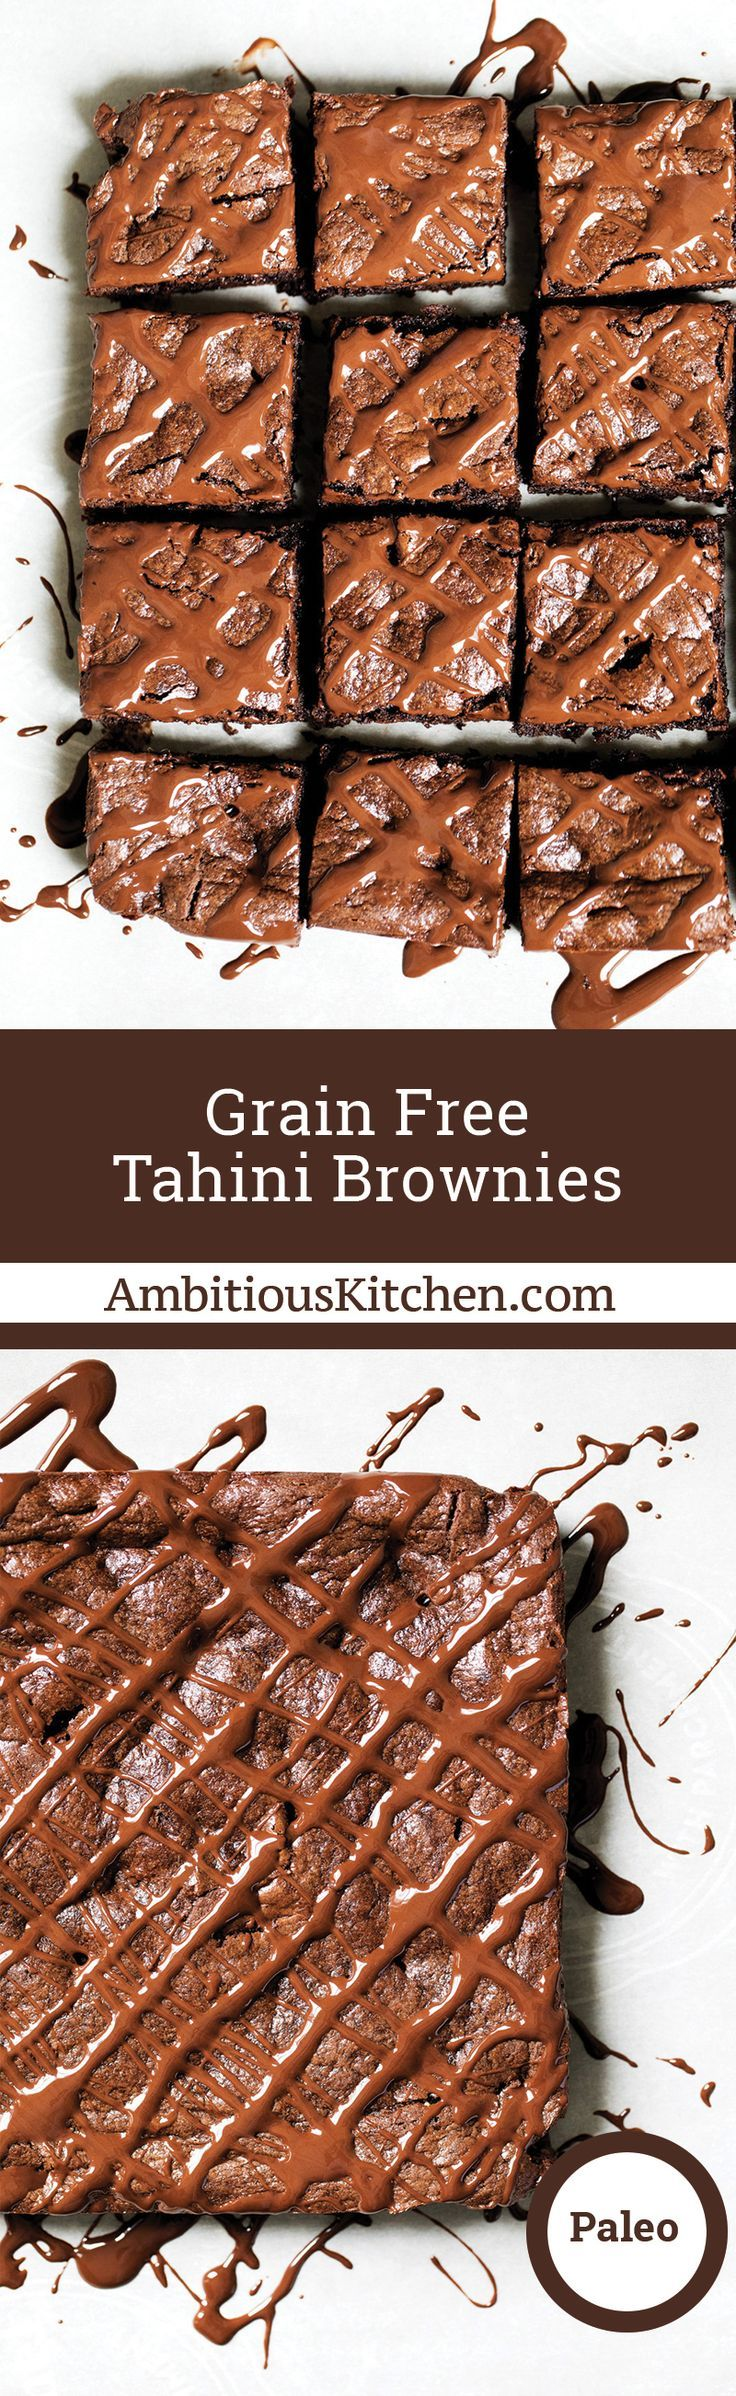 The best brownies I've ever eaten: tahini brownies. No butter, flour, oil or refined sugar. These paleo, gluten free and grain free brownies are simply incredible with REAL, wholesome ingredients!